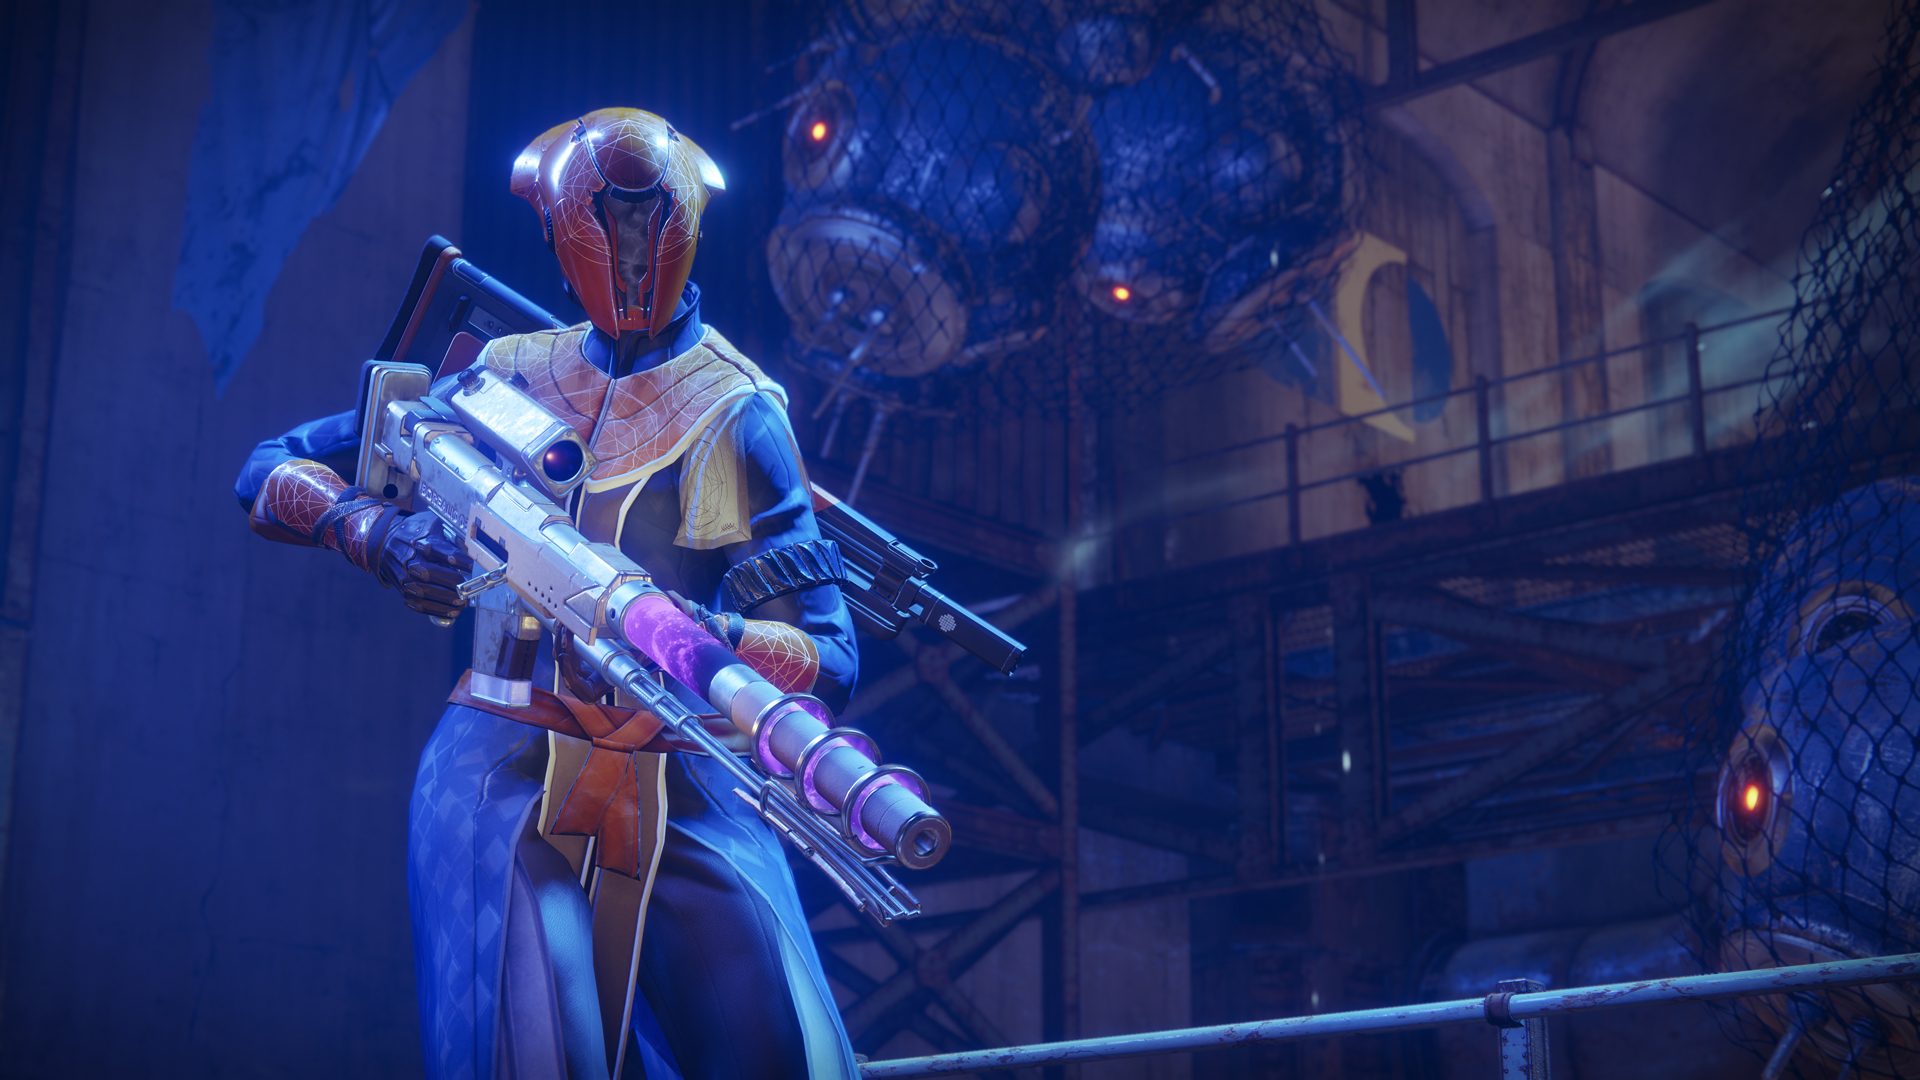 New Destiny 2 PvP Details Revealed Including A Look At The Revamped Nova Bomb